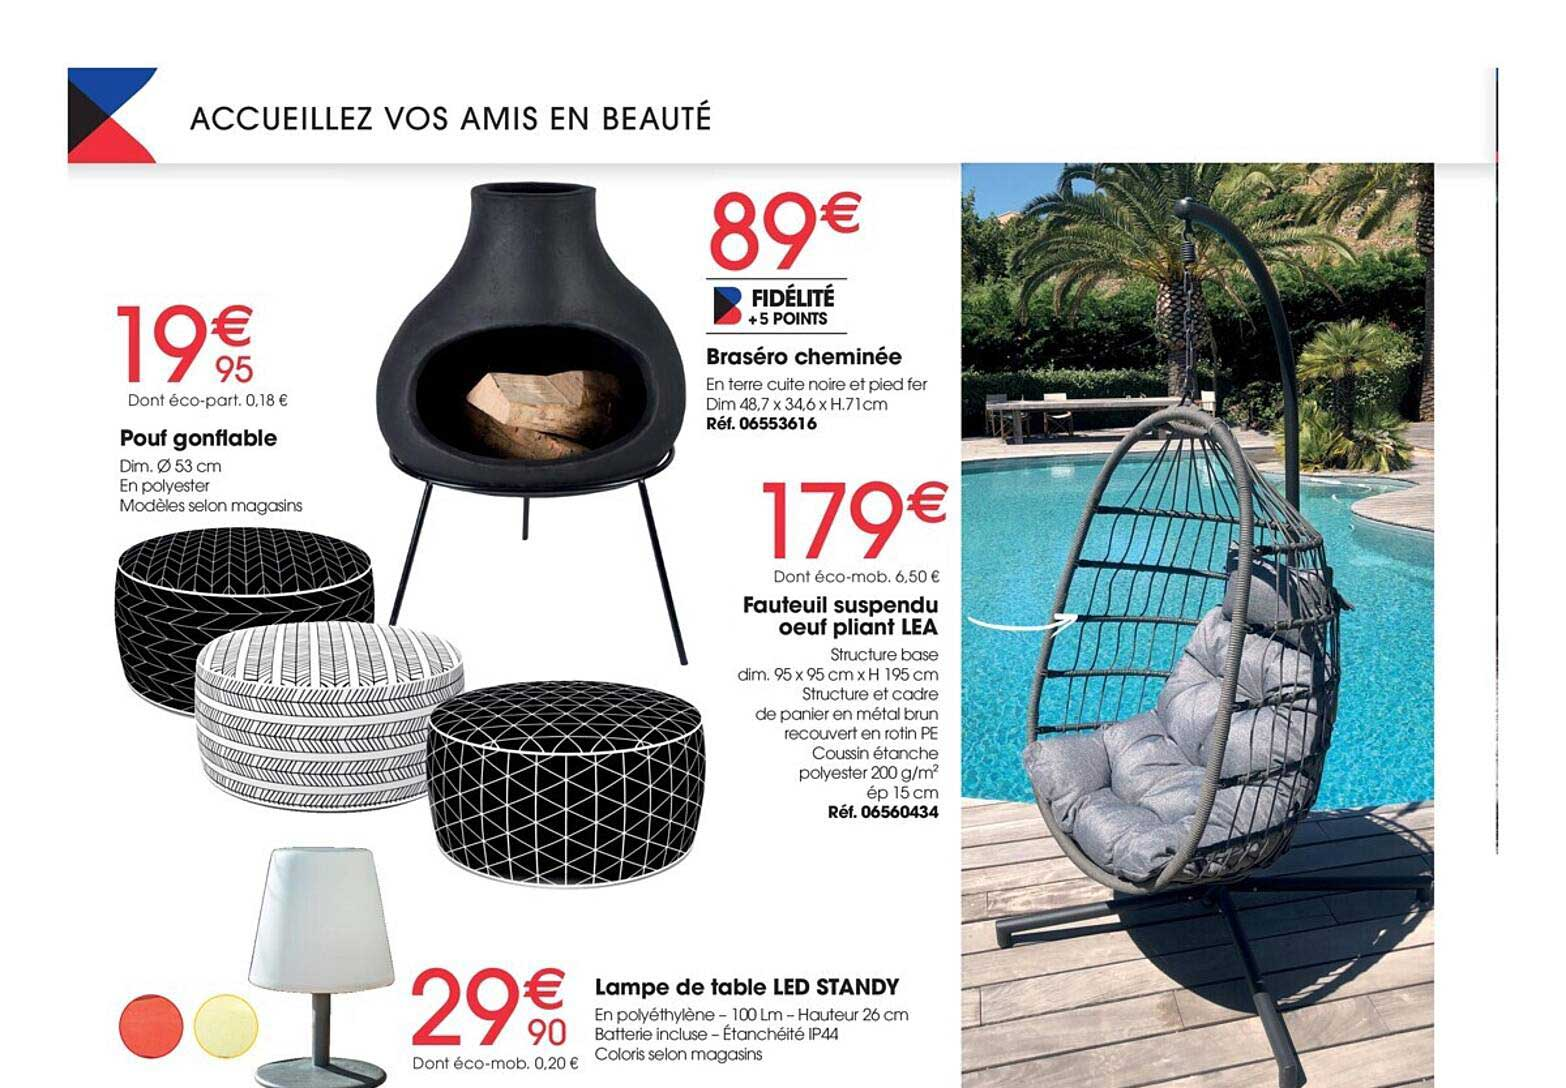 Https Www Icatalogue Fr I Eleclerc Brico Aspirateur De Cheminee 288819